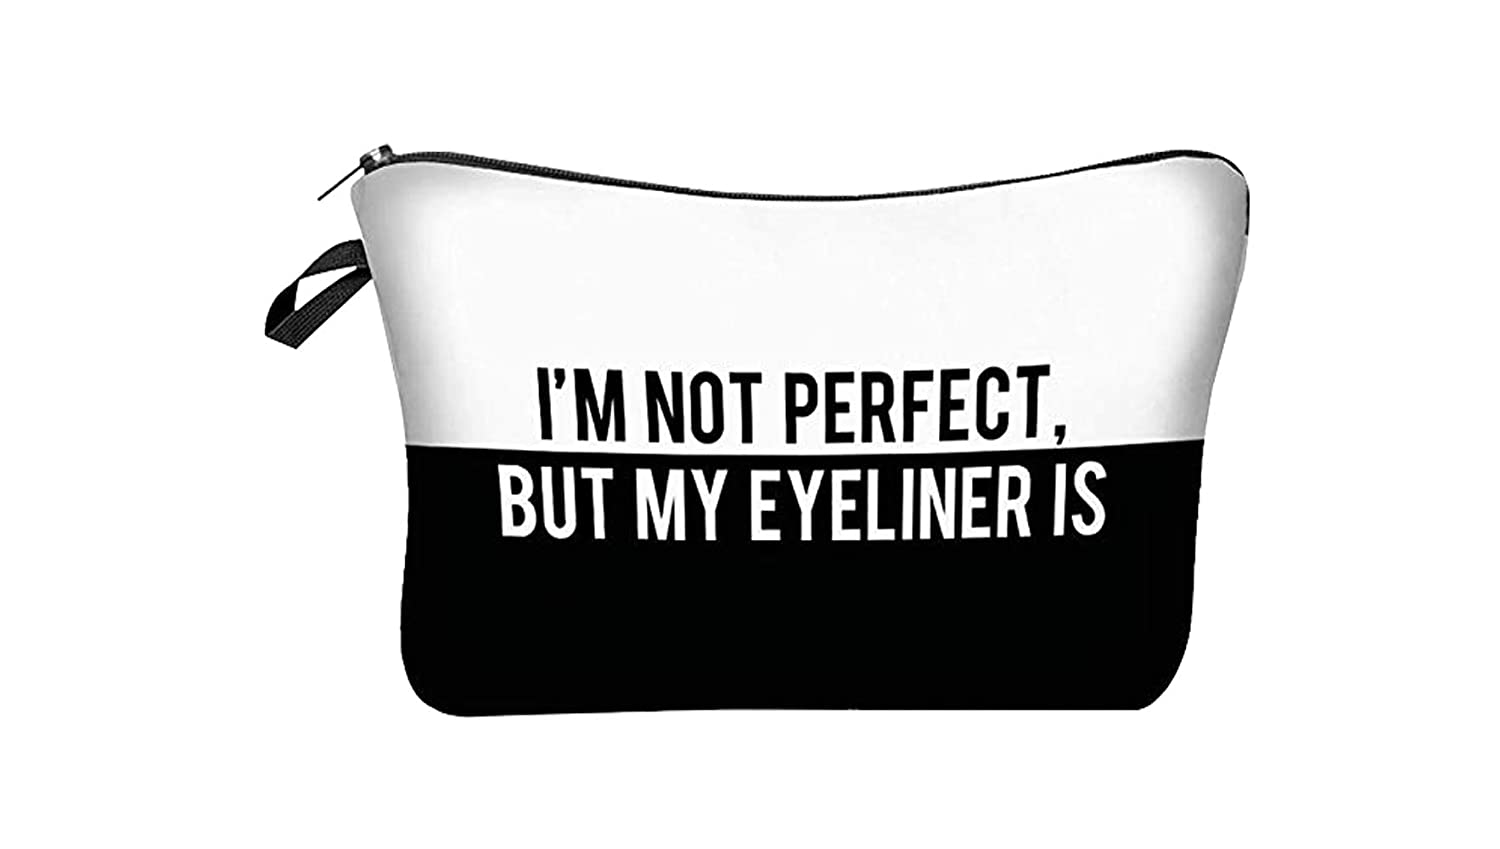 Jshend Cosmetic Bag Small Makeup Pouch Travel Bags For Toiletries/Accessories Organizer /3D Printing Women Cosmetic Bag Multifuncition Pencil Holder (BlackP)